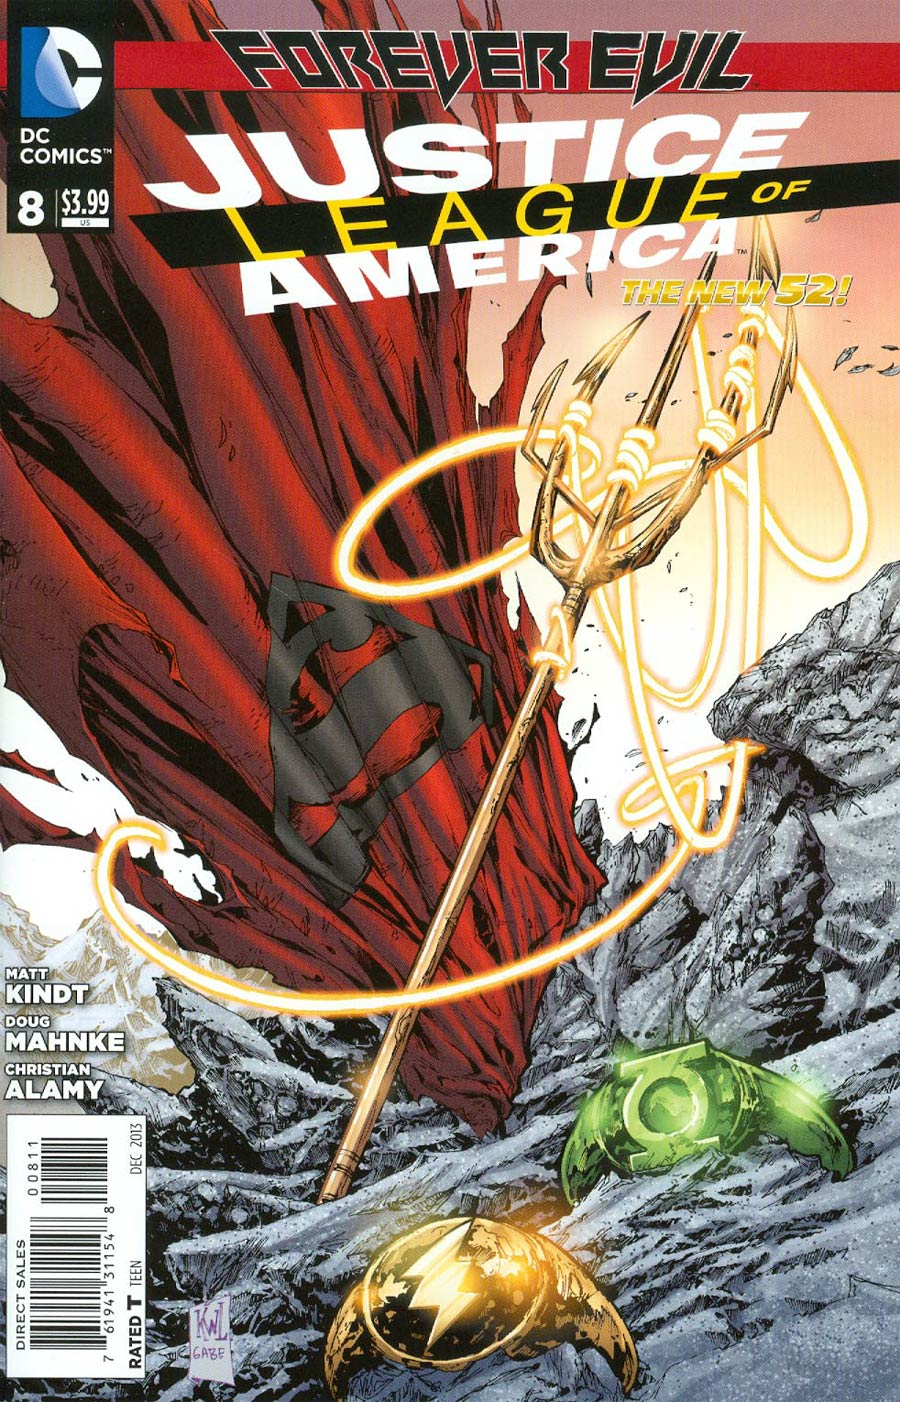 Justice League Of America Vol 3 #8 Cover A Regular Ken Lashley Cover (Forever Evil Tie-In)